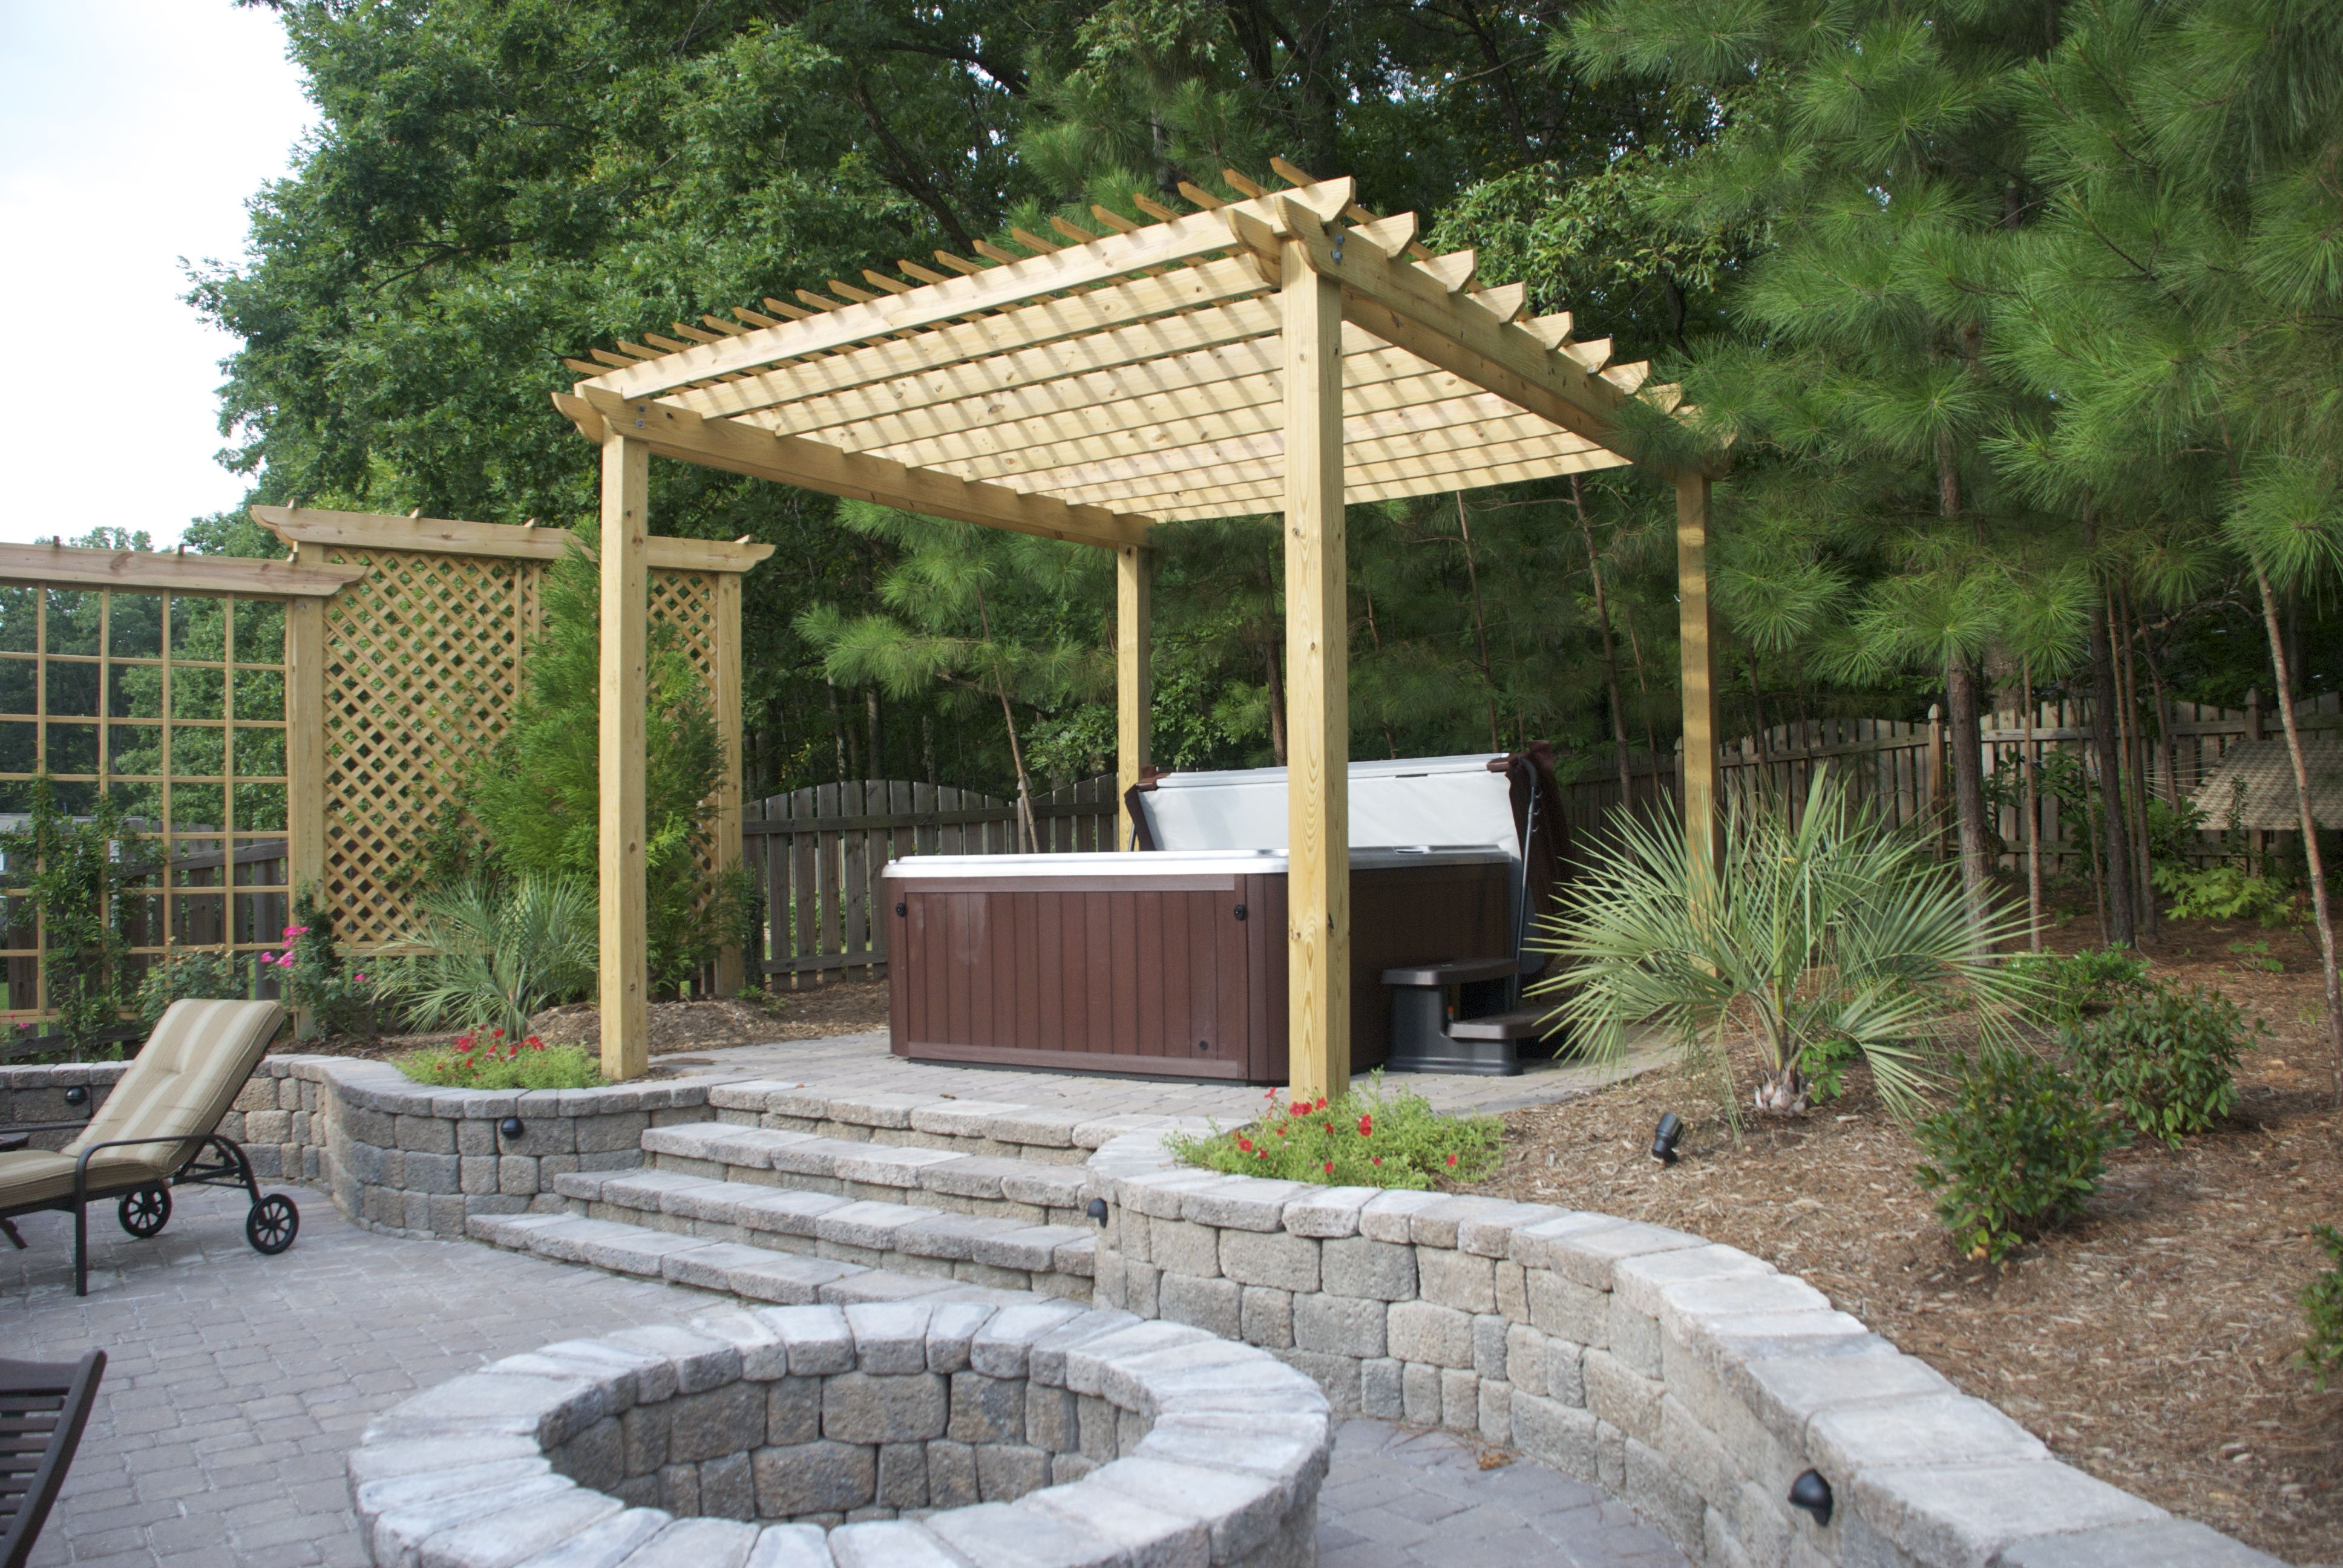 sundance chelsee hot tub  spa installations  backyard ideas  pergola  this hot spring grandee is